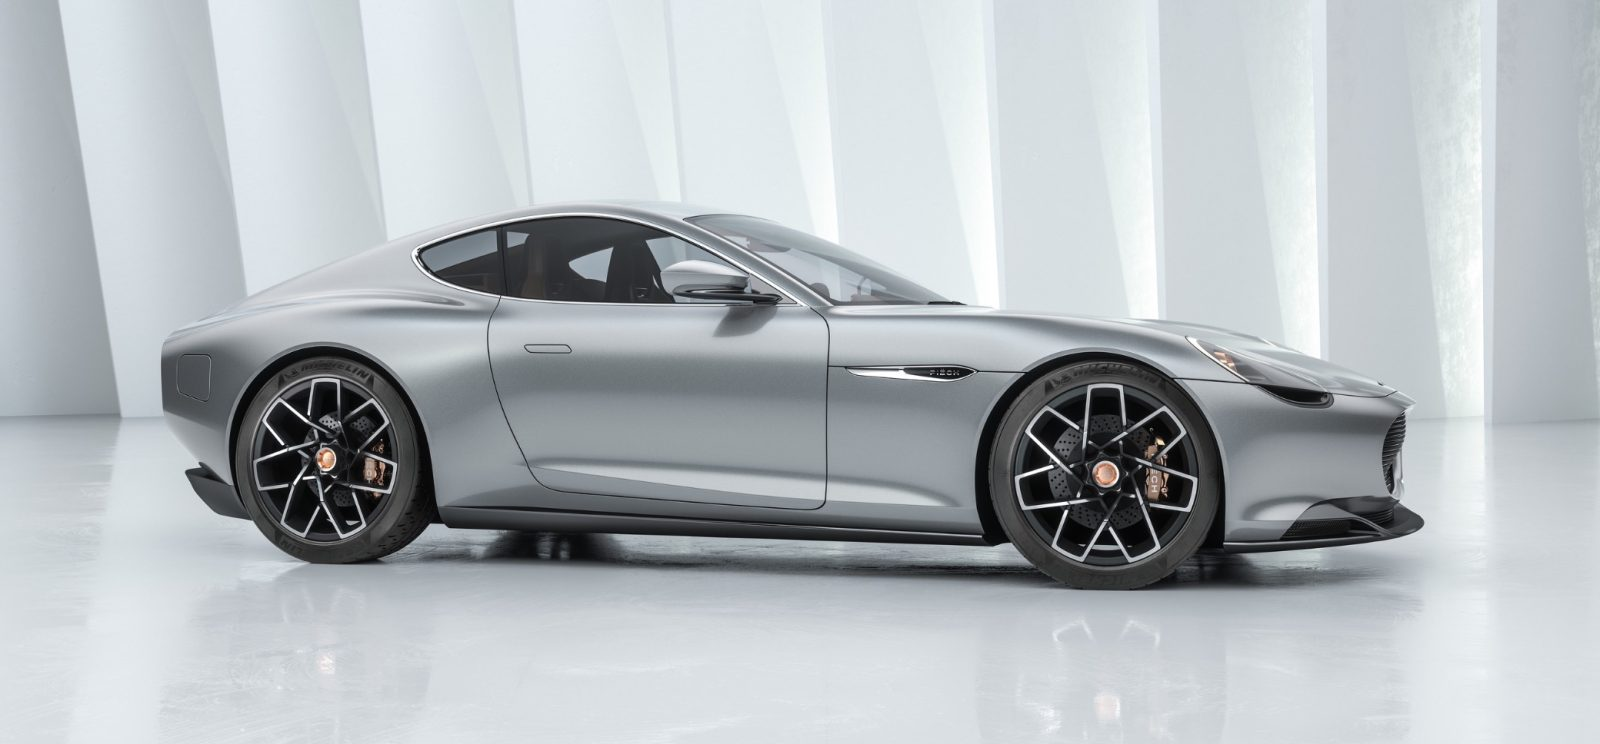 All Electric Gt Unveiled With Over 300 Miles Of Range And 5 Min Charging Enabled By Mysterious Battery